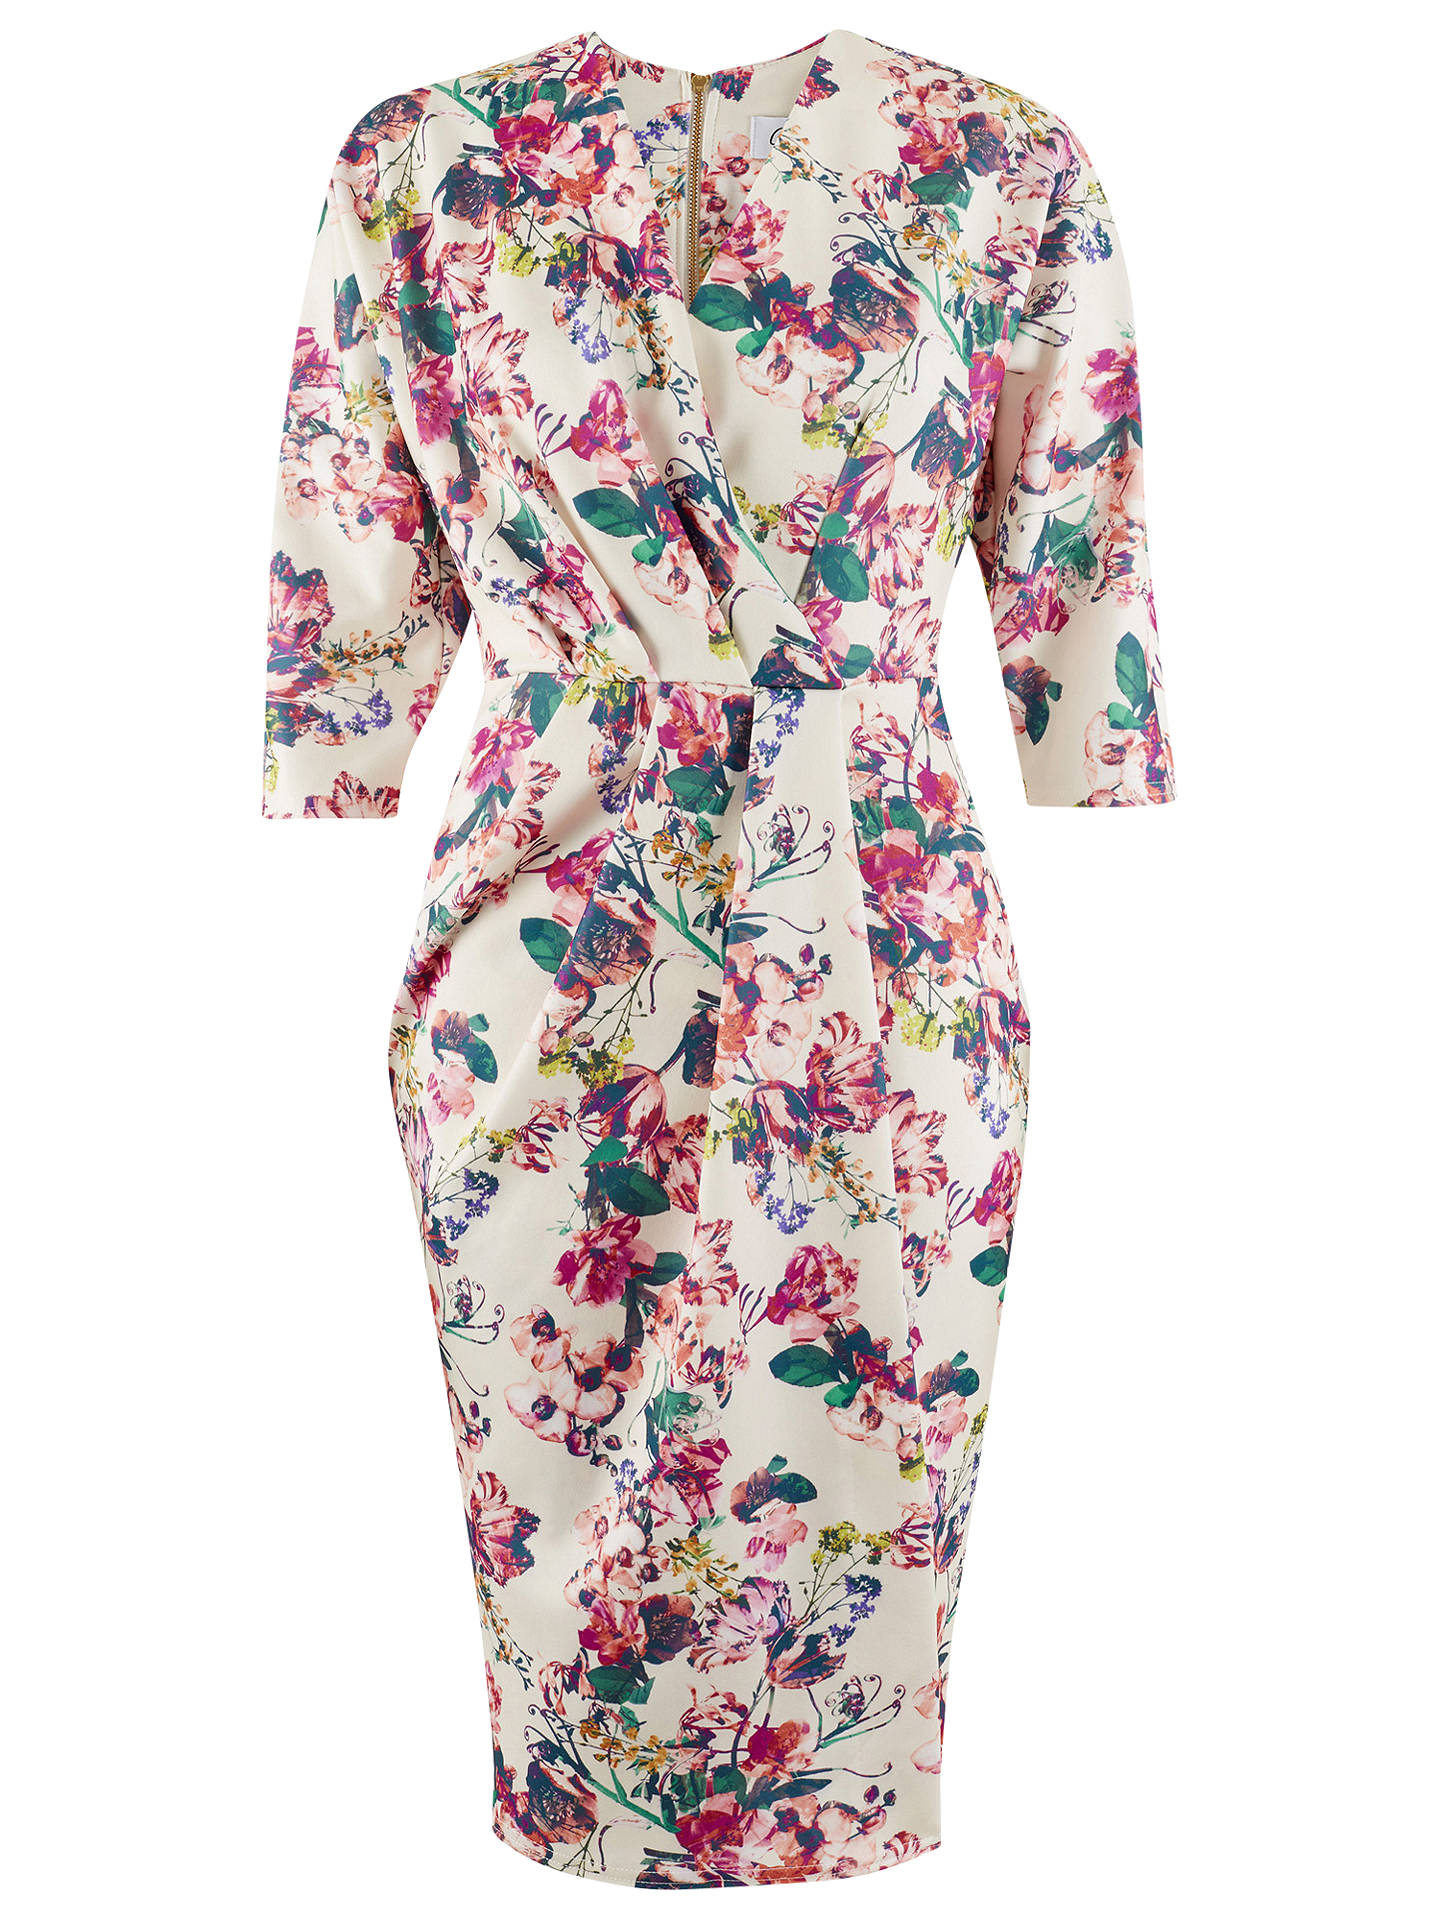 f5a43393b Buy Closet Floral Print Scuba Wrap Dress, Multi, 8 Online at johnlewis.com  ...